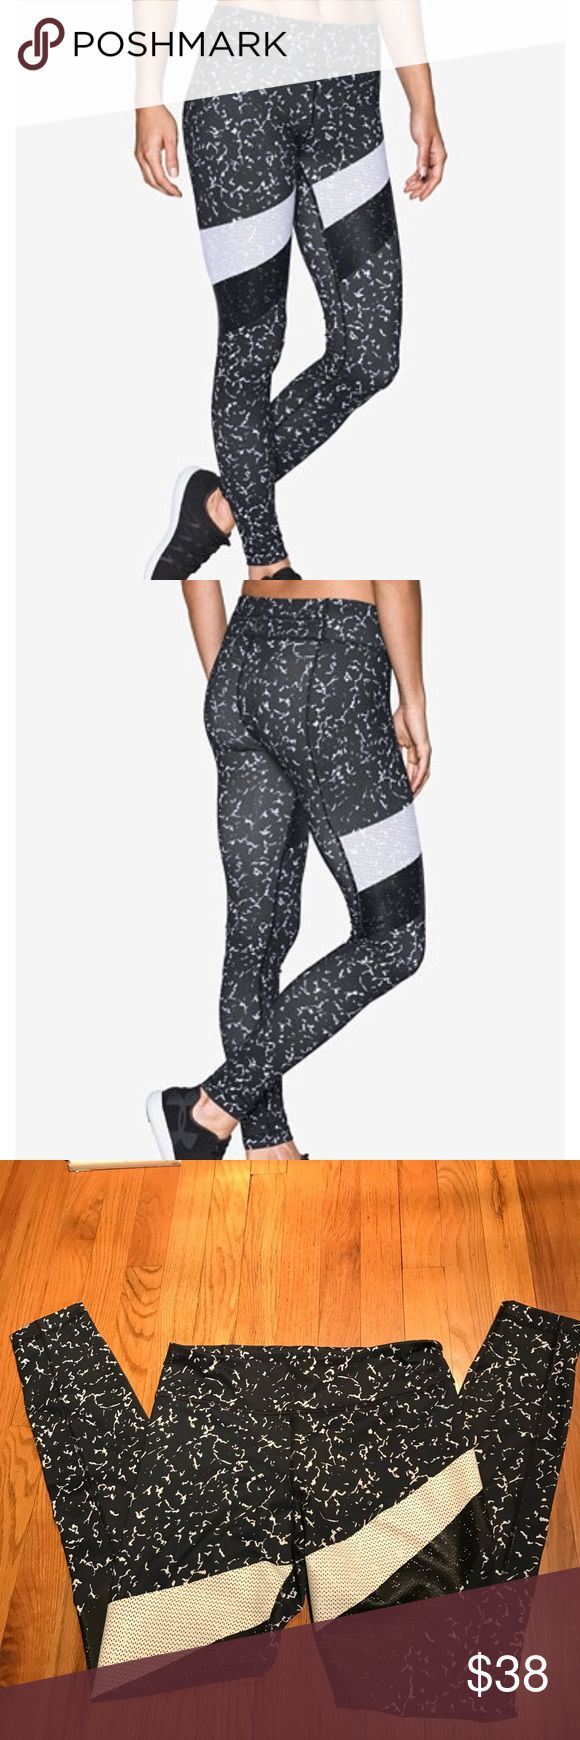 Under Armour Leggings StudioLux soft and supportive leggings. Stripes across legs have a rubber-like feel. High rise, skinny fit through hips and thighs. Hidden pocket in waist band. Inseam is 29 inches. Under Armour Pants Leggings